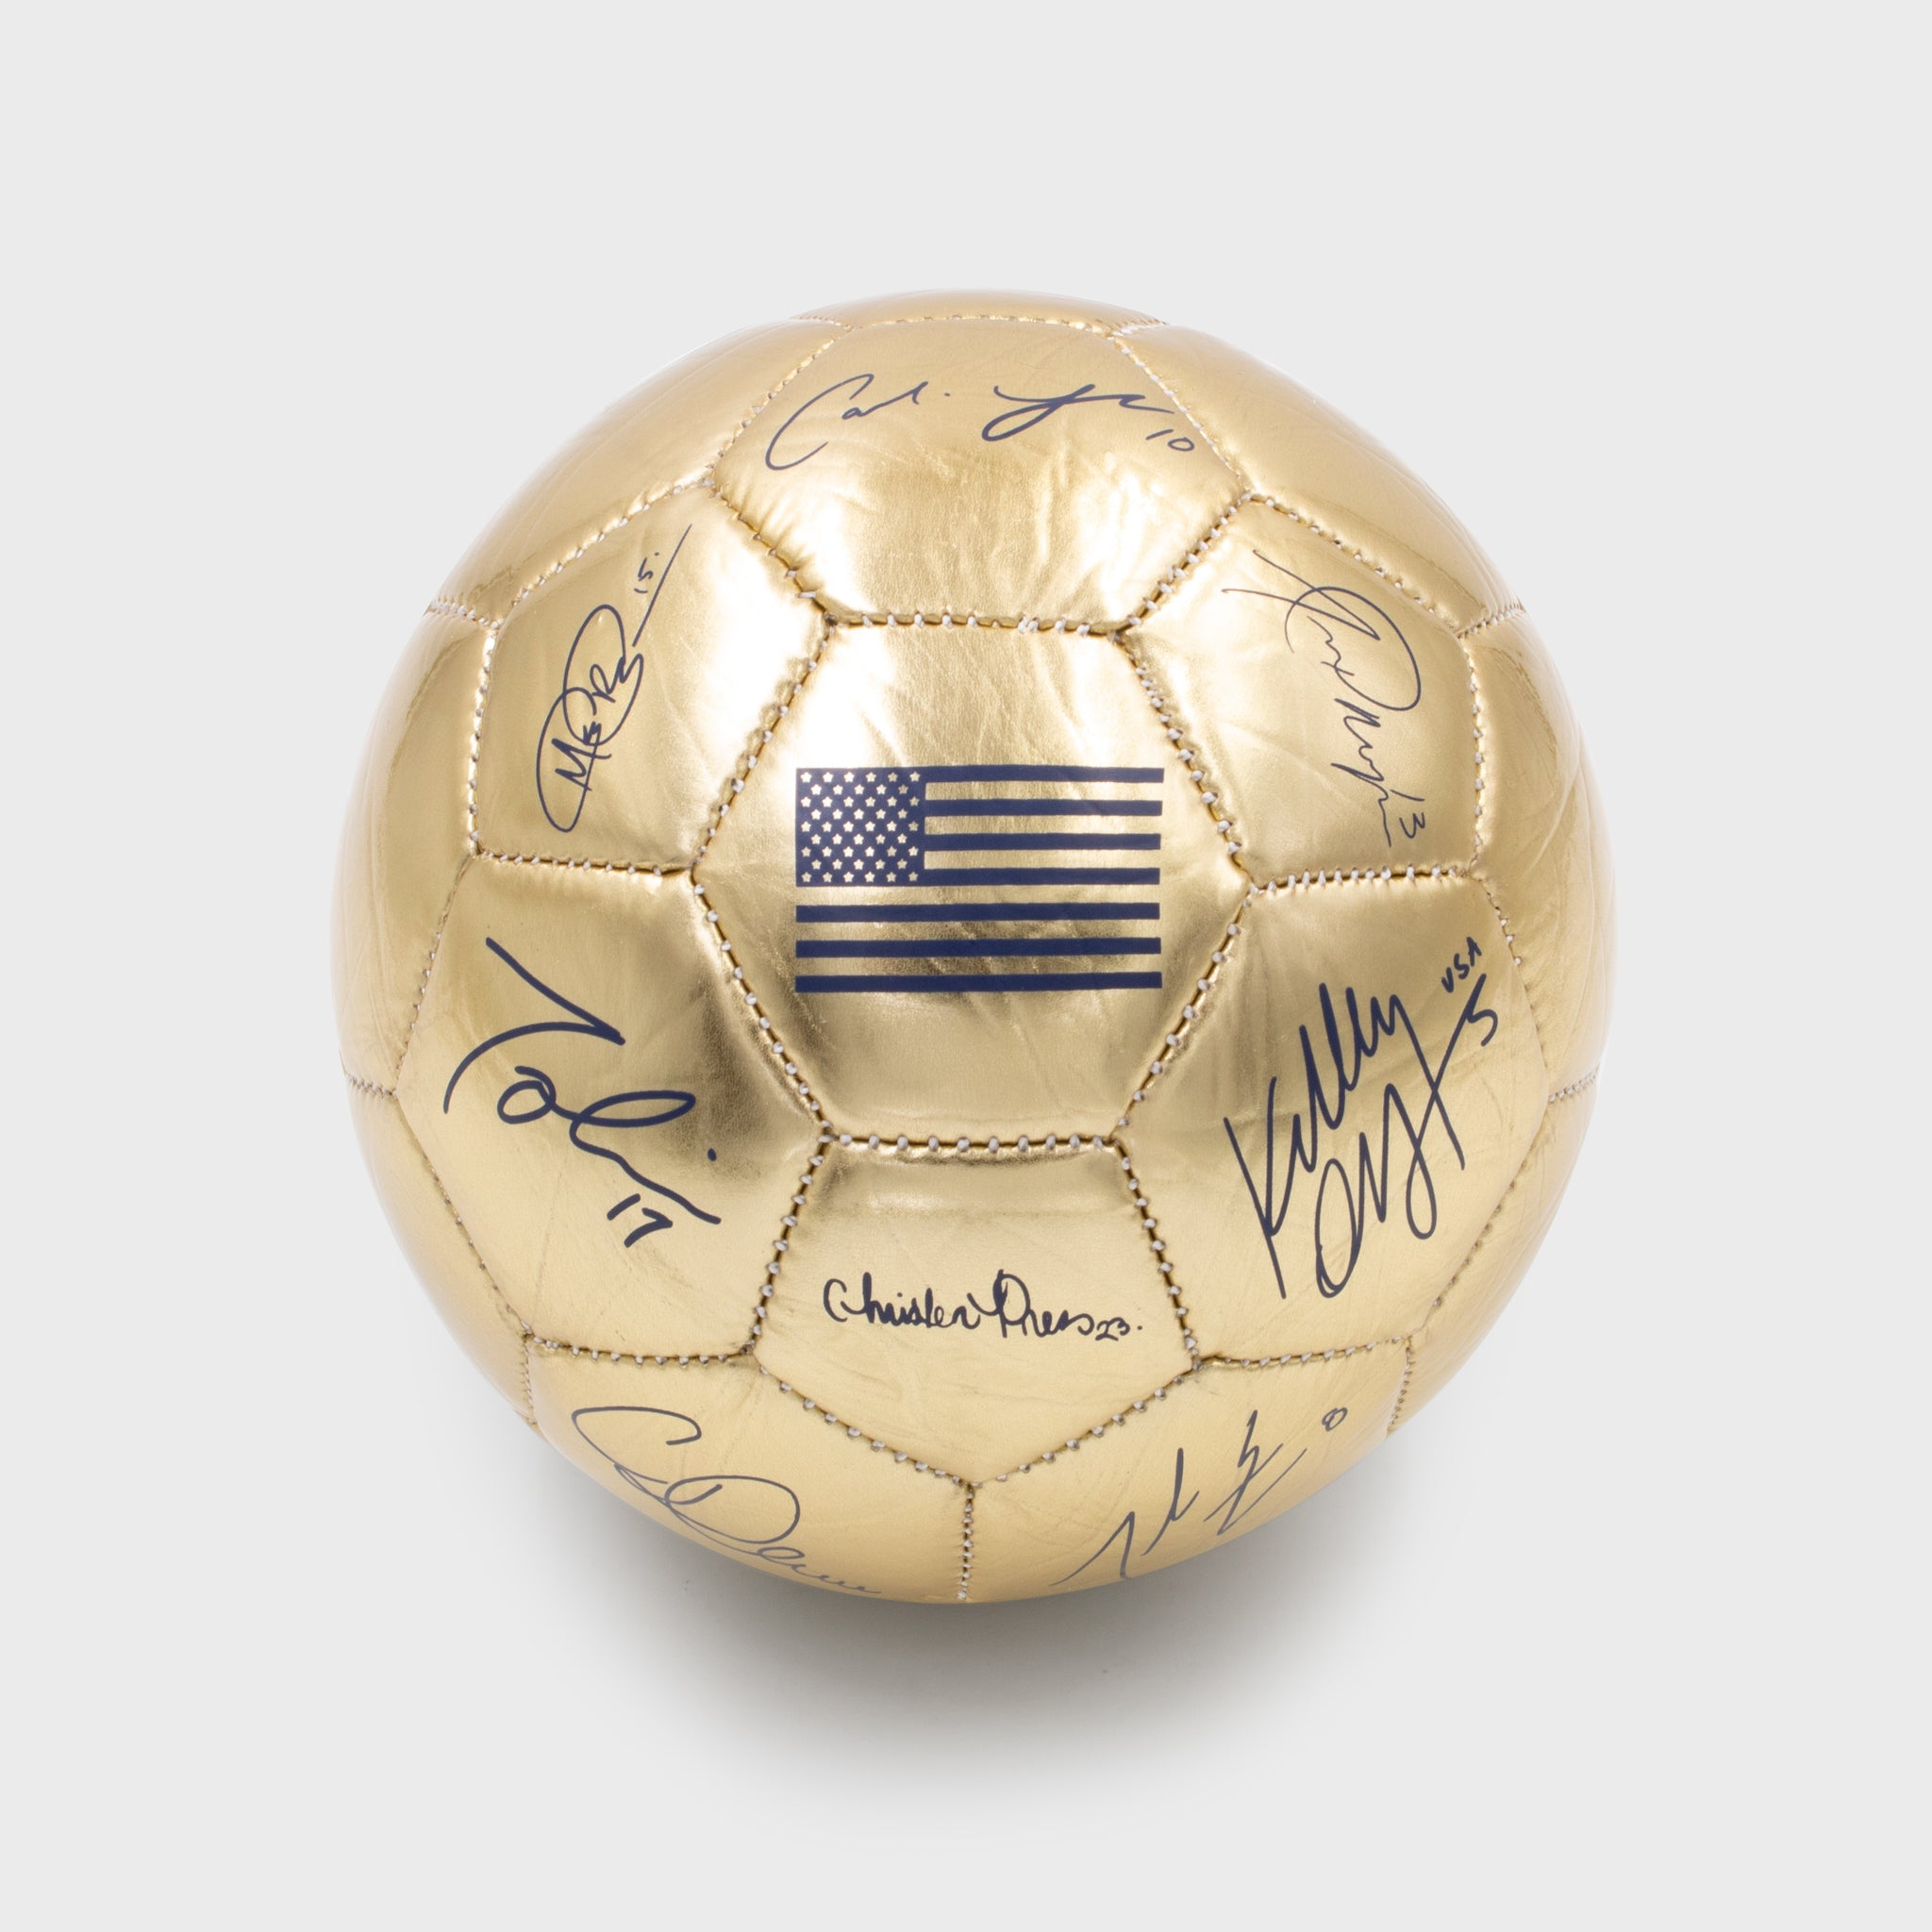 uswnt us usa united states women's national team soccer champion collectible exclusive box mini signed ball autograph culturefly